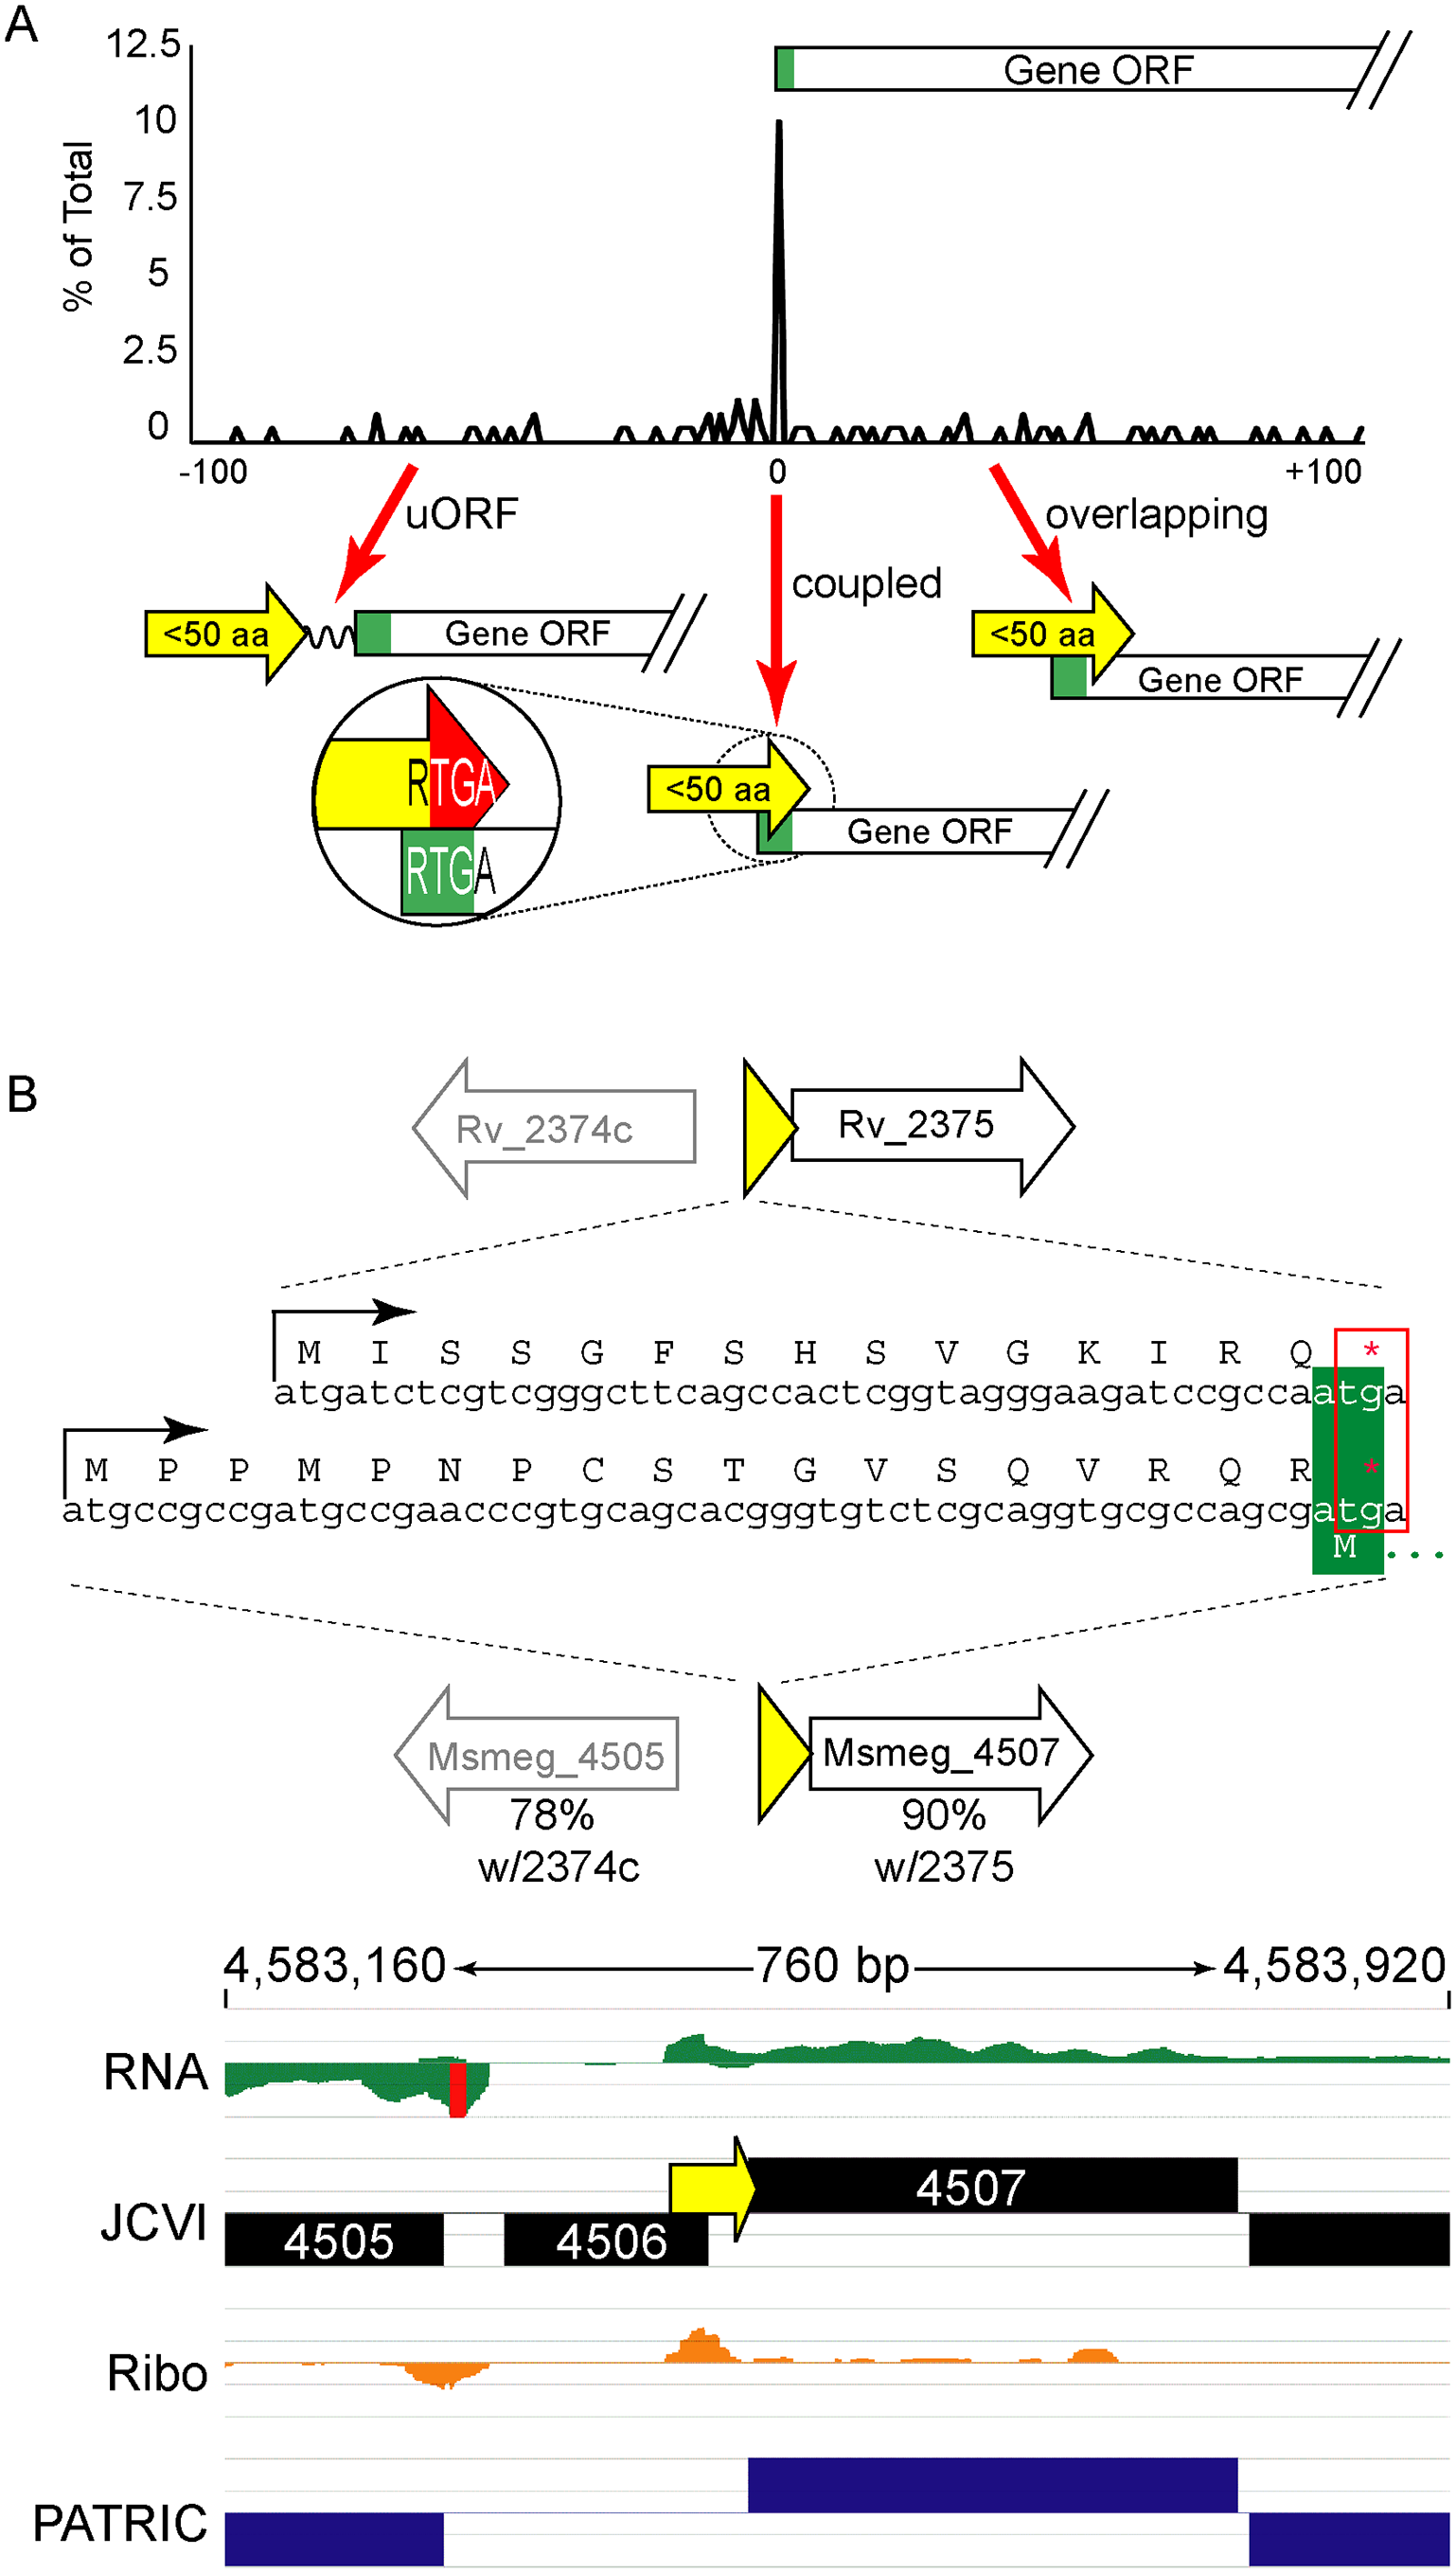 Small protein ORFs are frequently coupled to the ORF downstream.